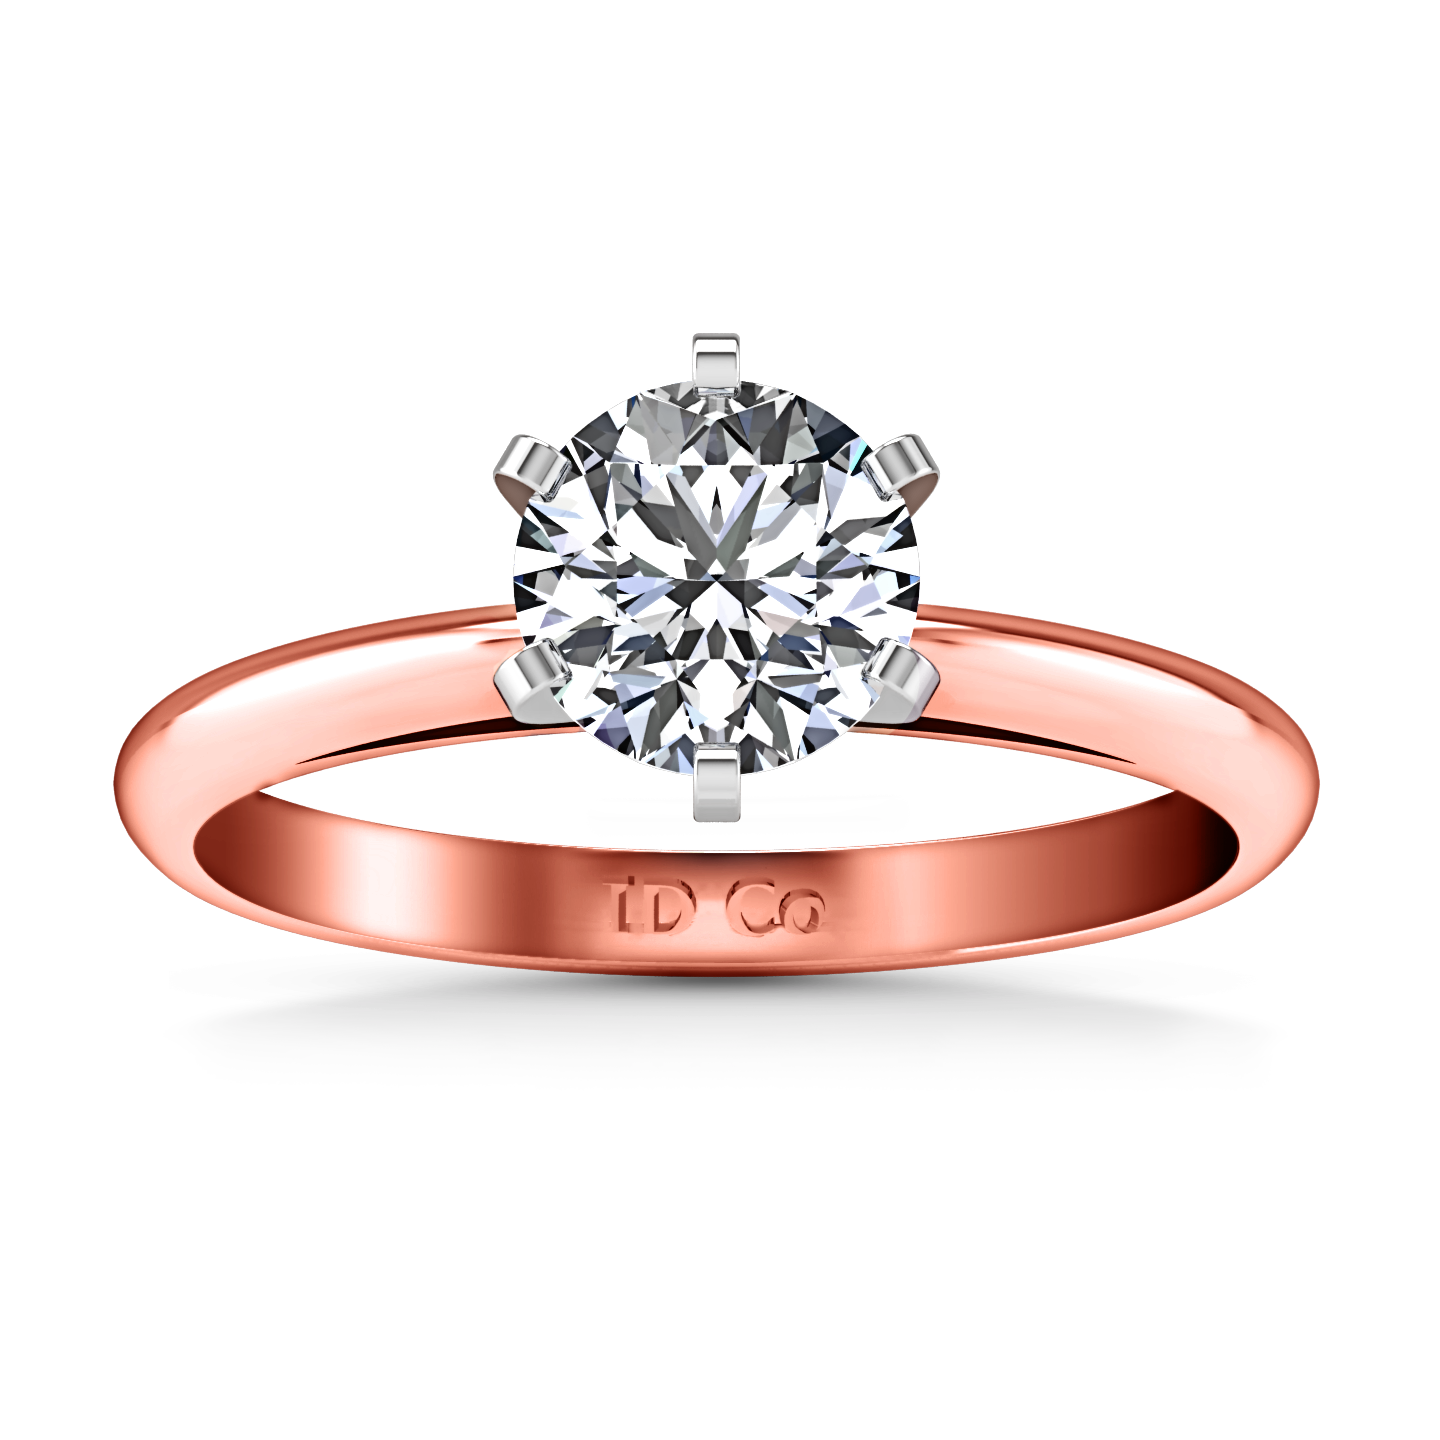 cathedral rings gold rose ellip imagine r ring engagement prong products solitaire